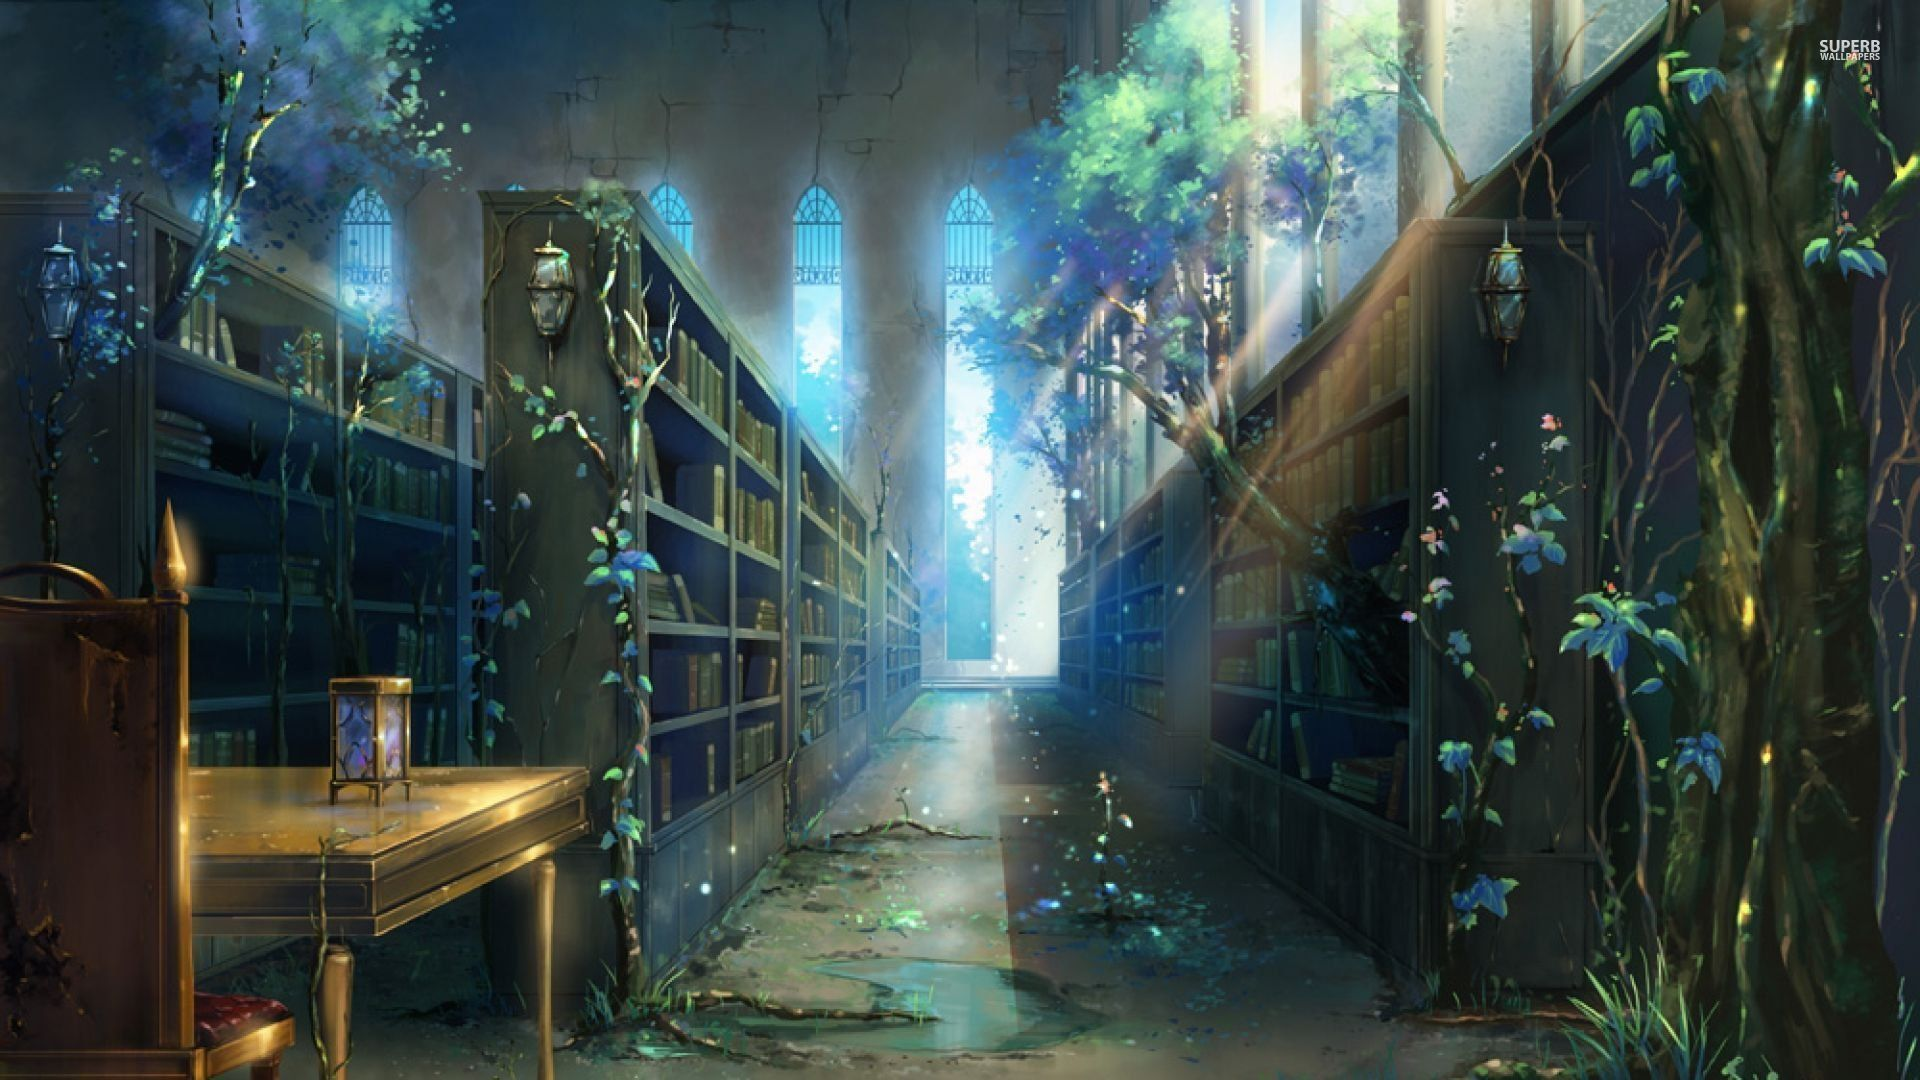 Amazing Wallpaper Harry Potter Library - 817e7e8041b84fe581f3ebc1197f0e7d  Image_909126.jpg